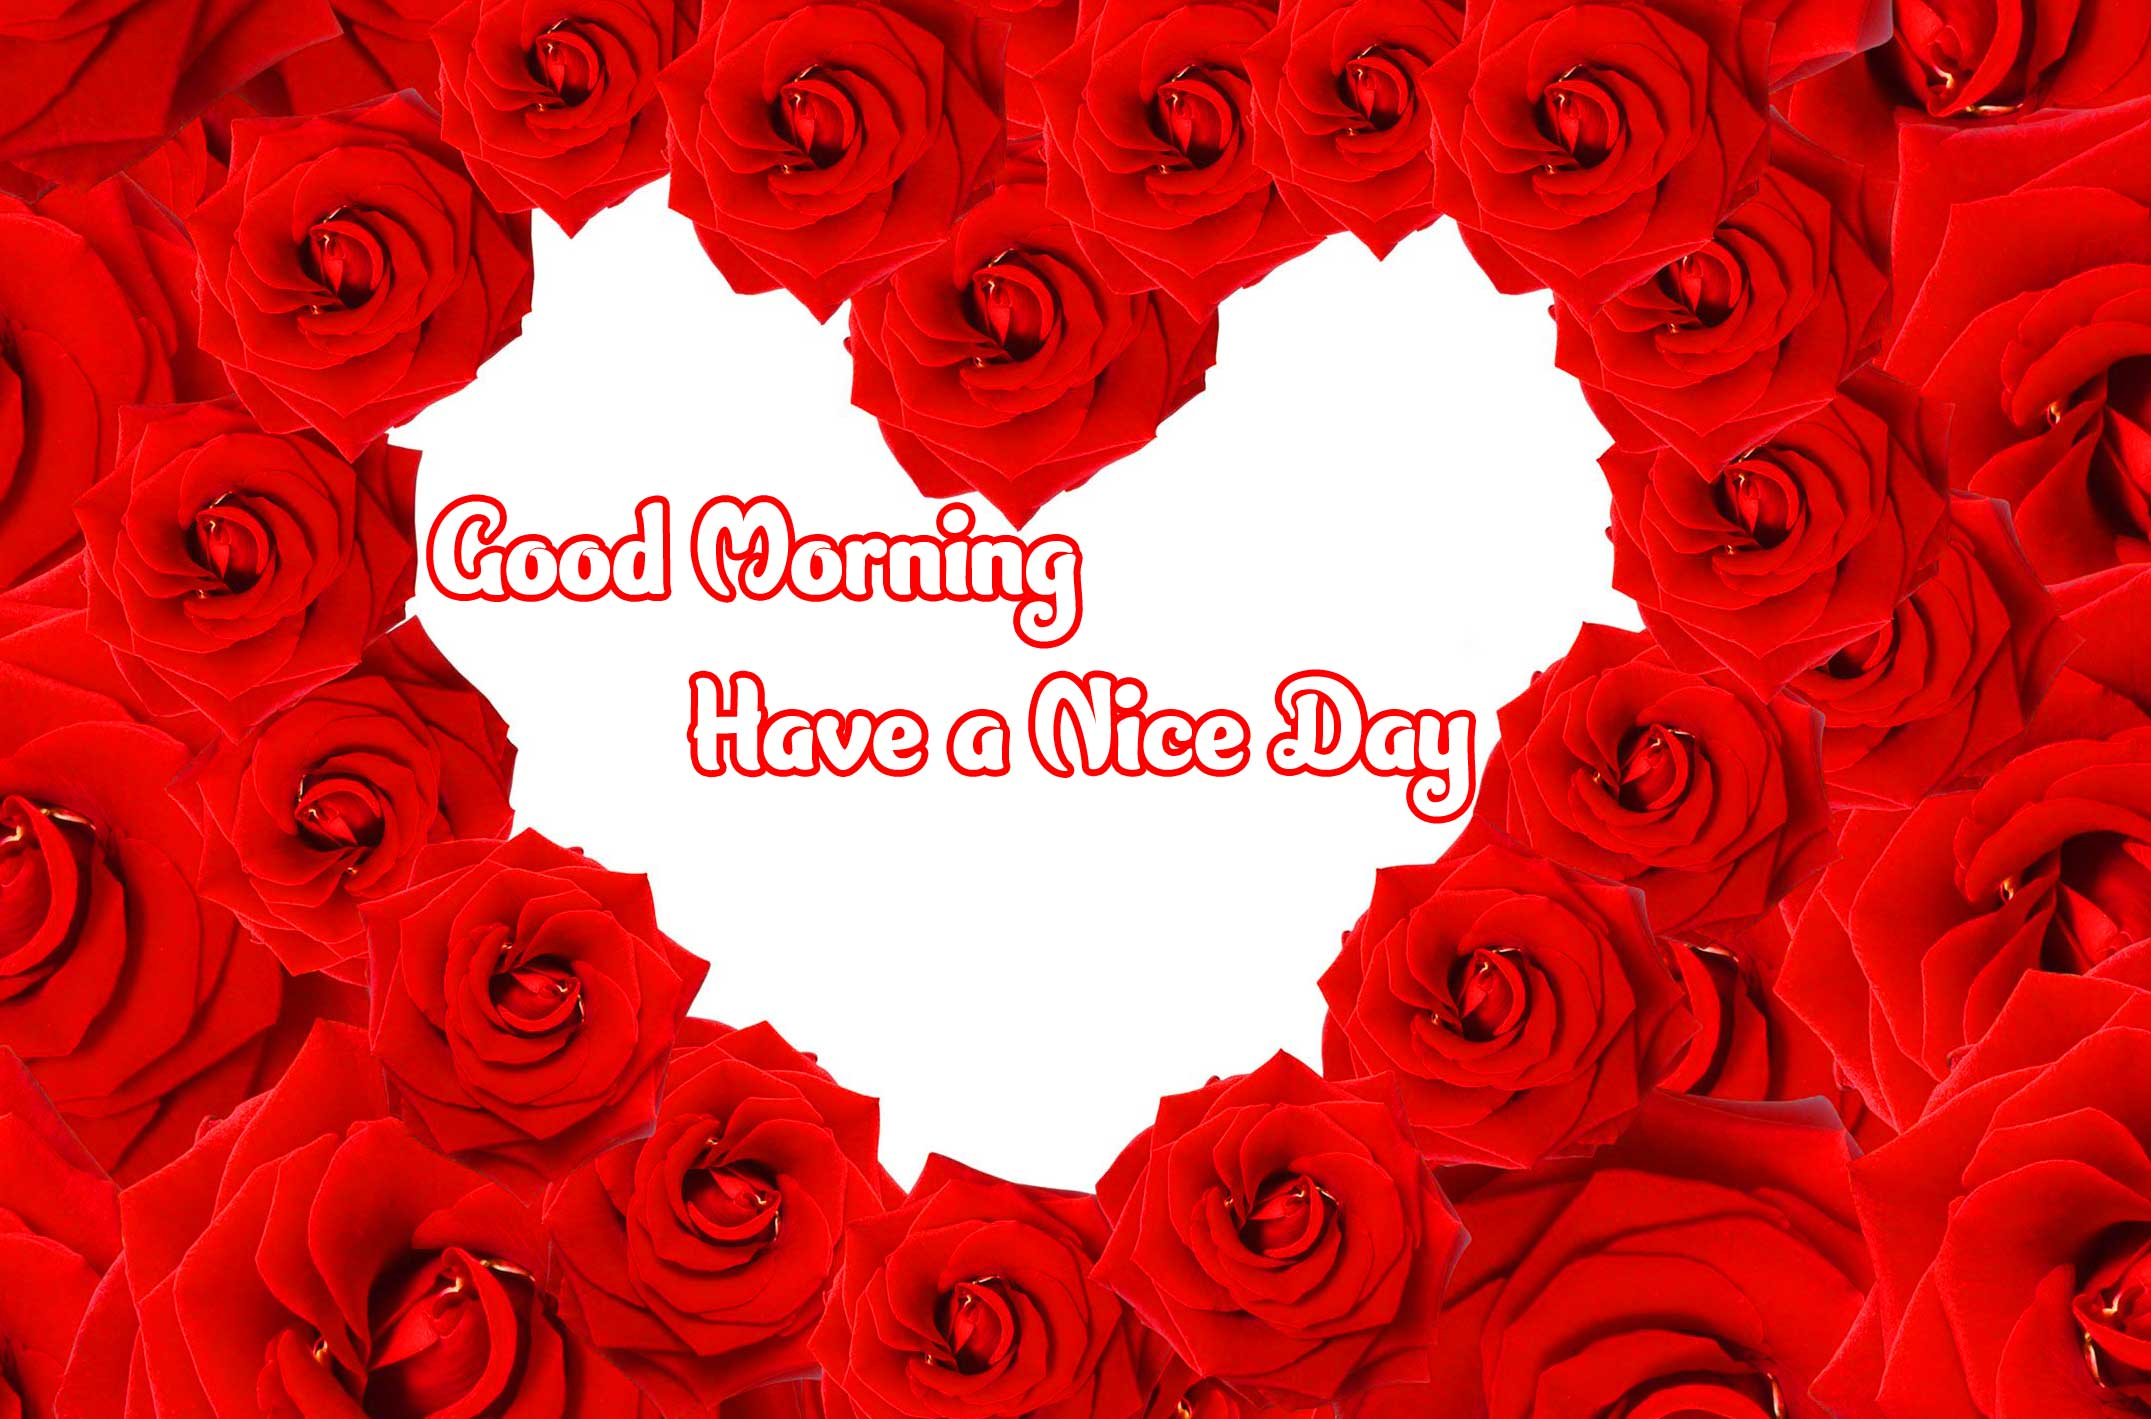 Amazing 1080 p Good Morning 4k ImagesPics Wallpaper for Love Couple